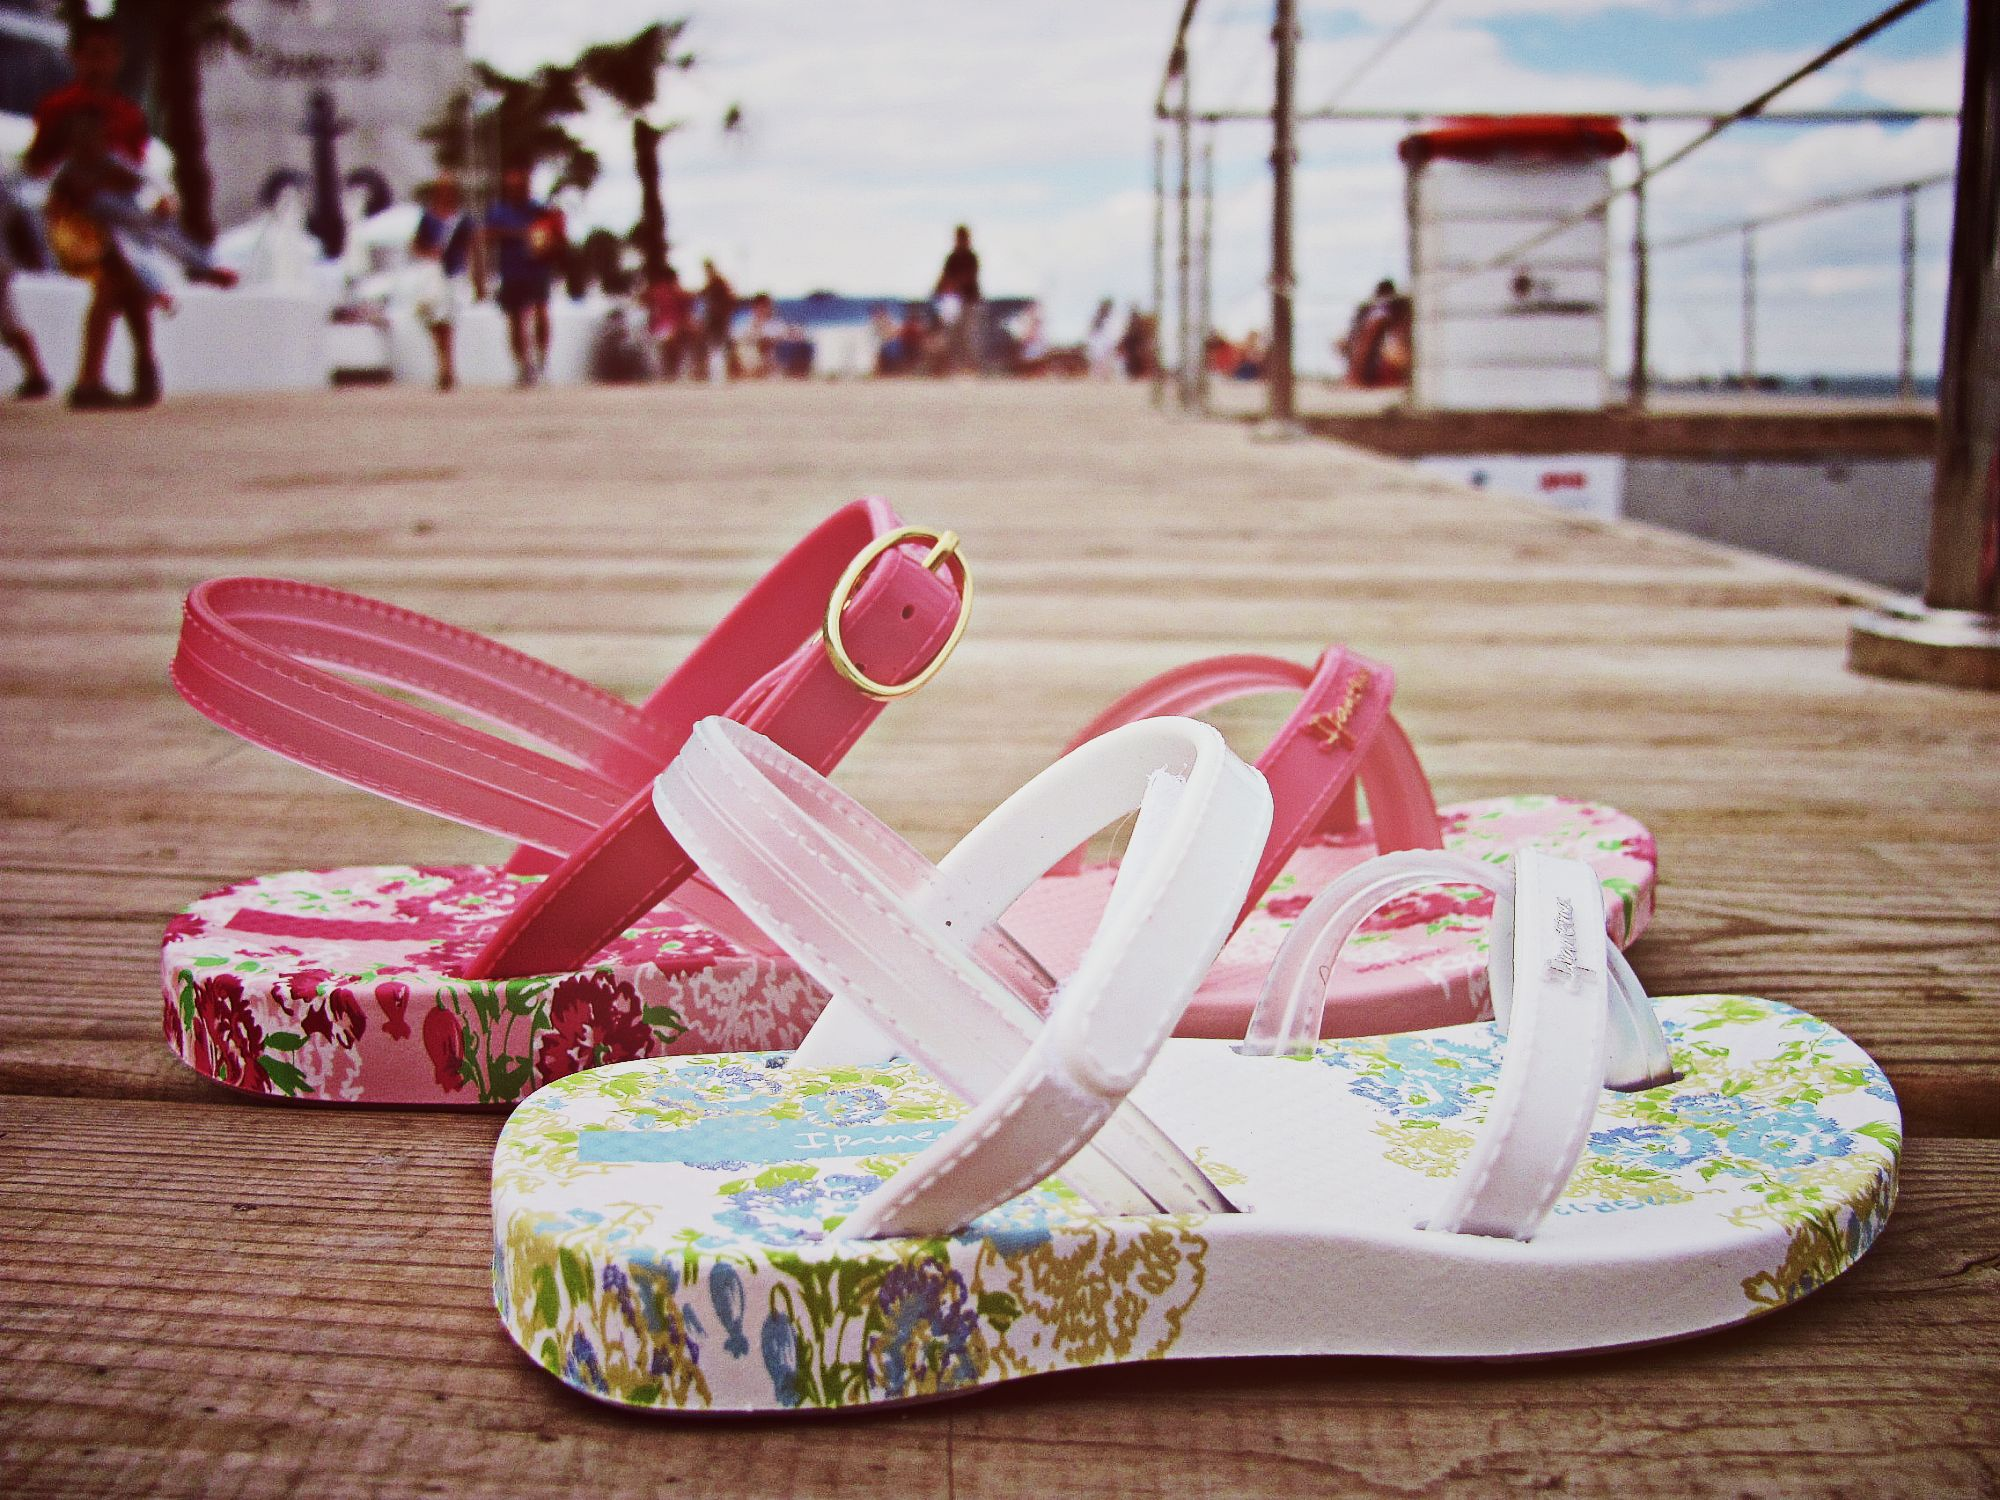 Ipanema fashion sandal baby FF 2014 year